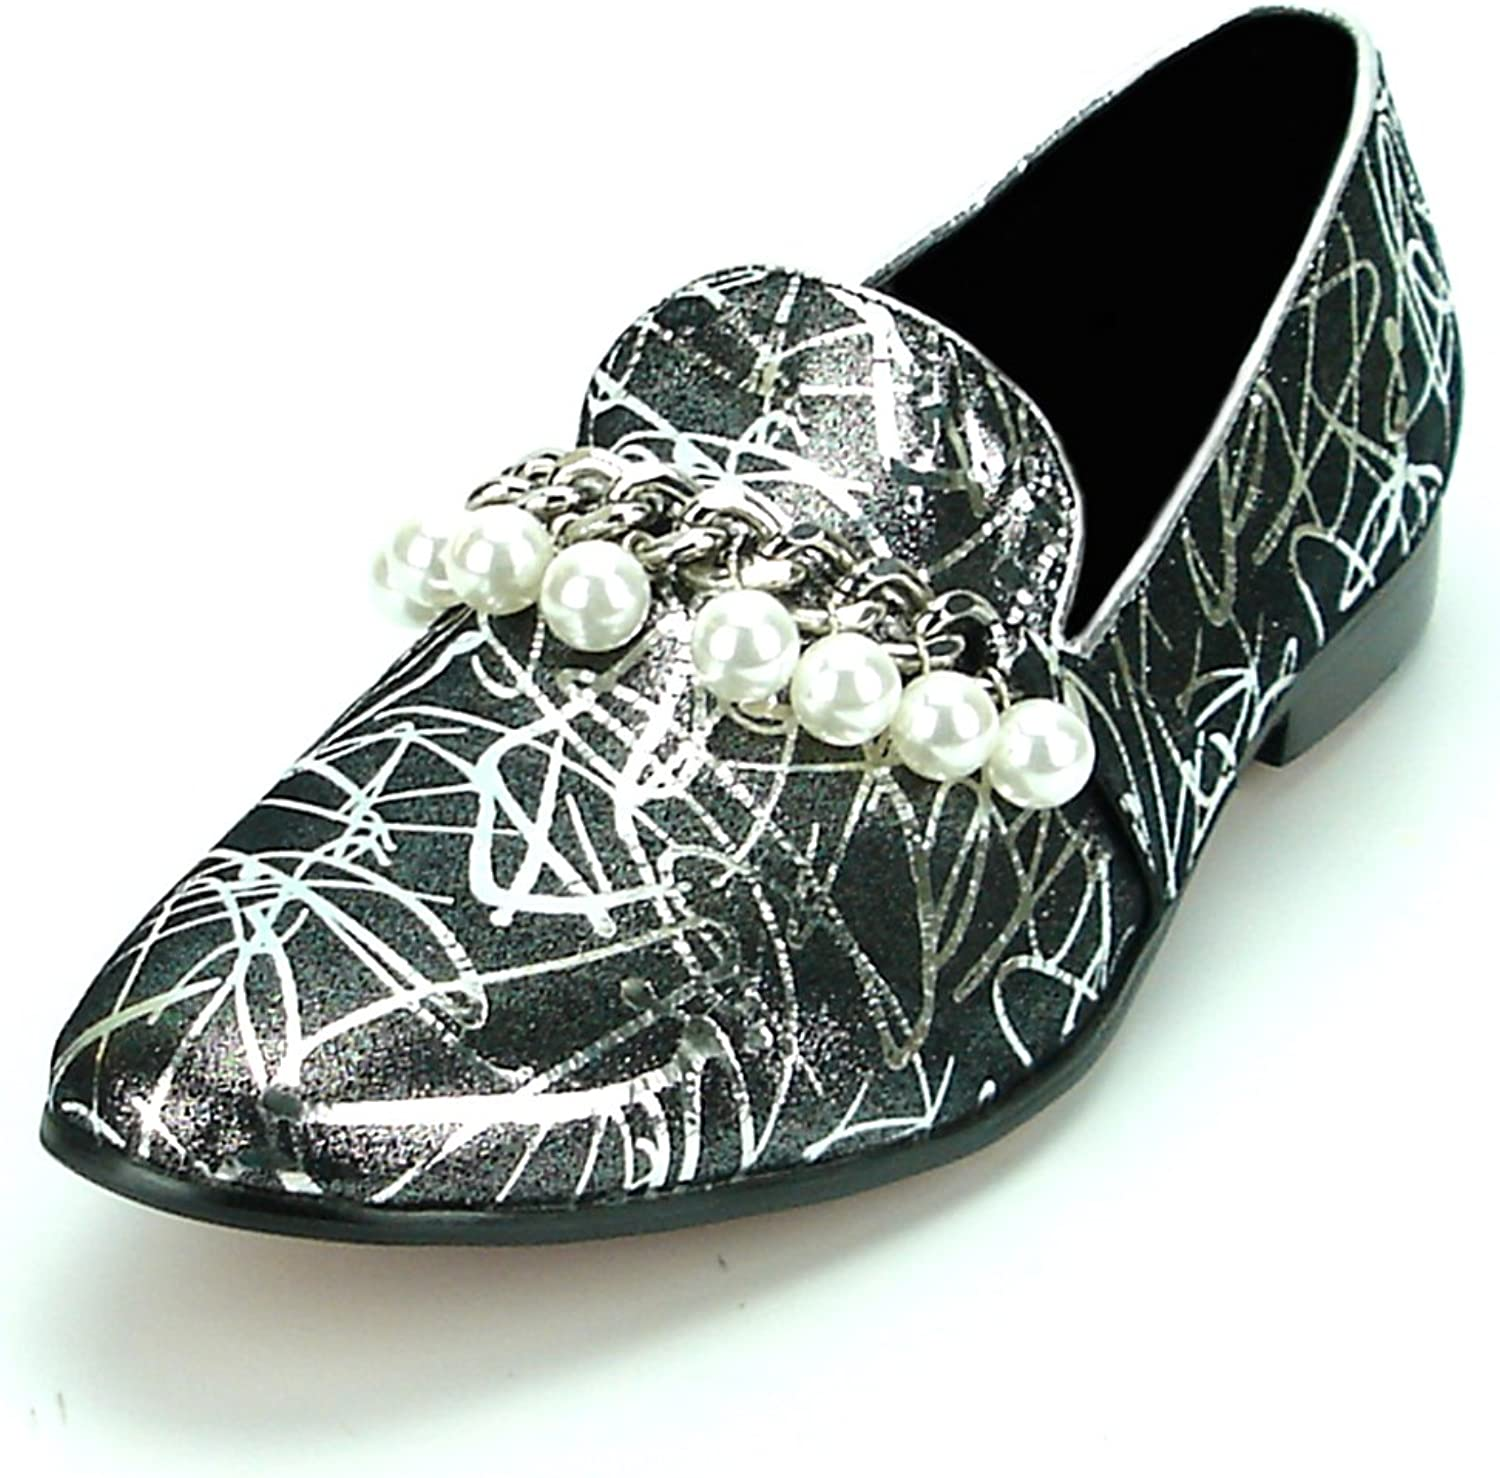 Fiesso by Aurelio Garcia FI-7215 Silver Leather Silver Chain with Pearls Slip on Loafer - European shoes Designs